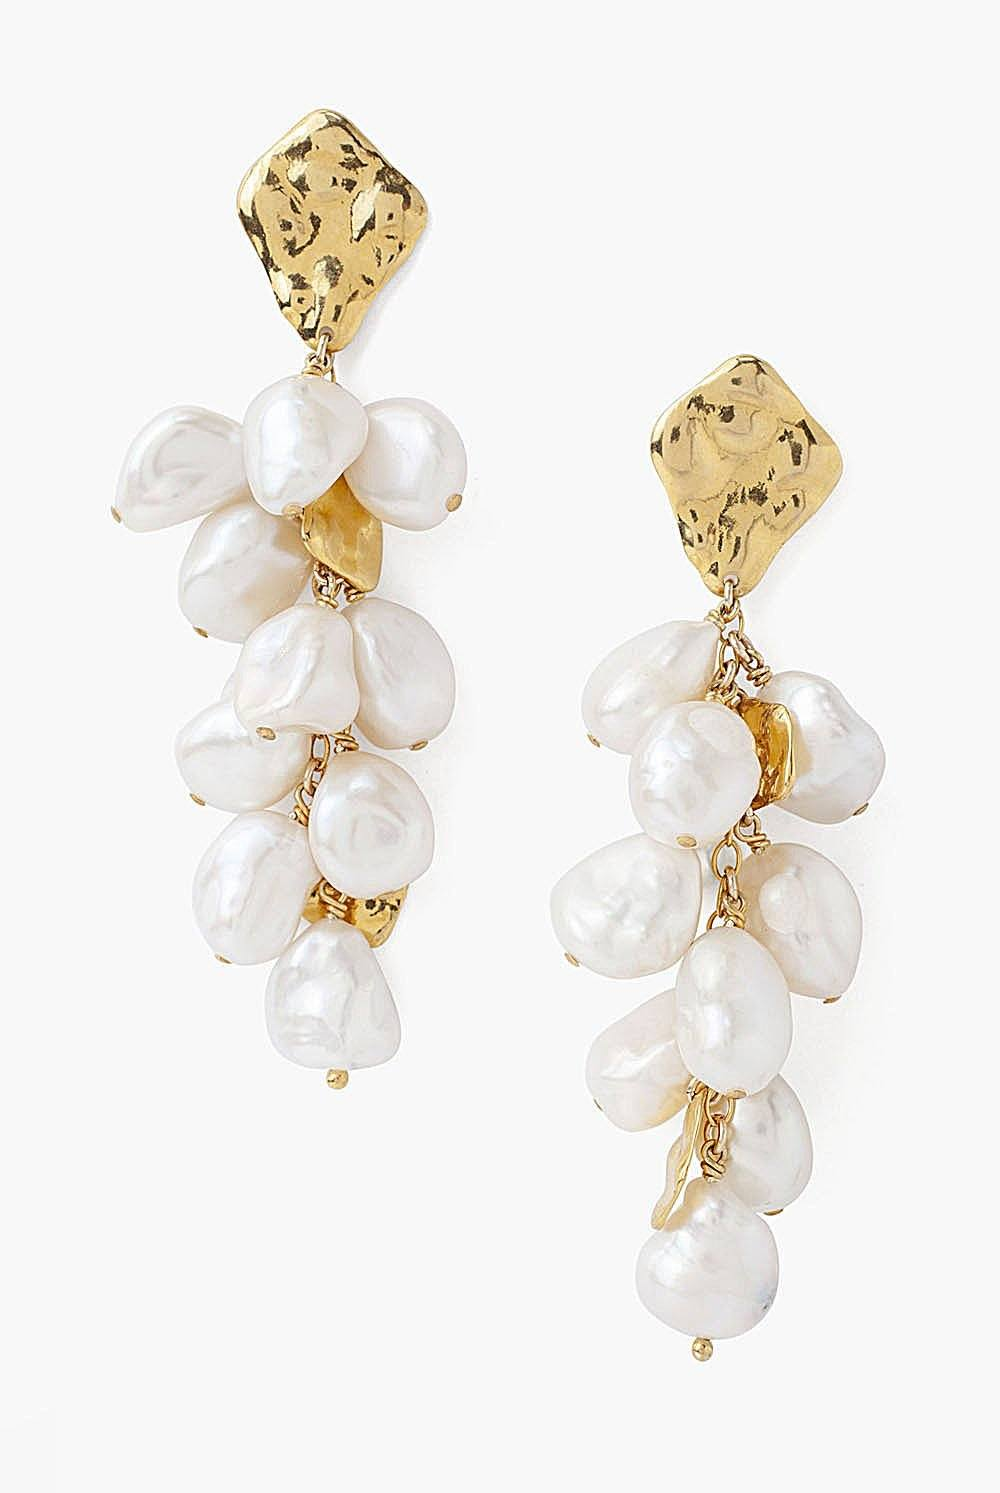 Gold and White Pearl Cluster Earrings